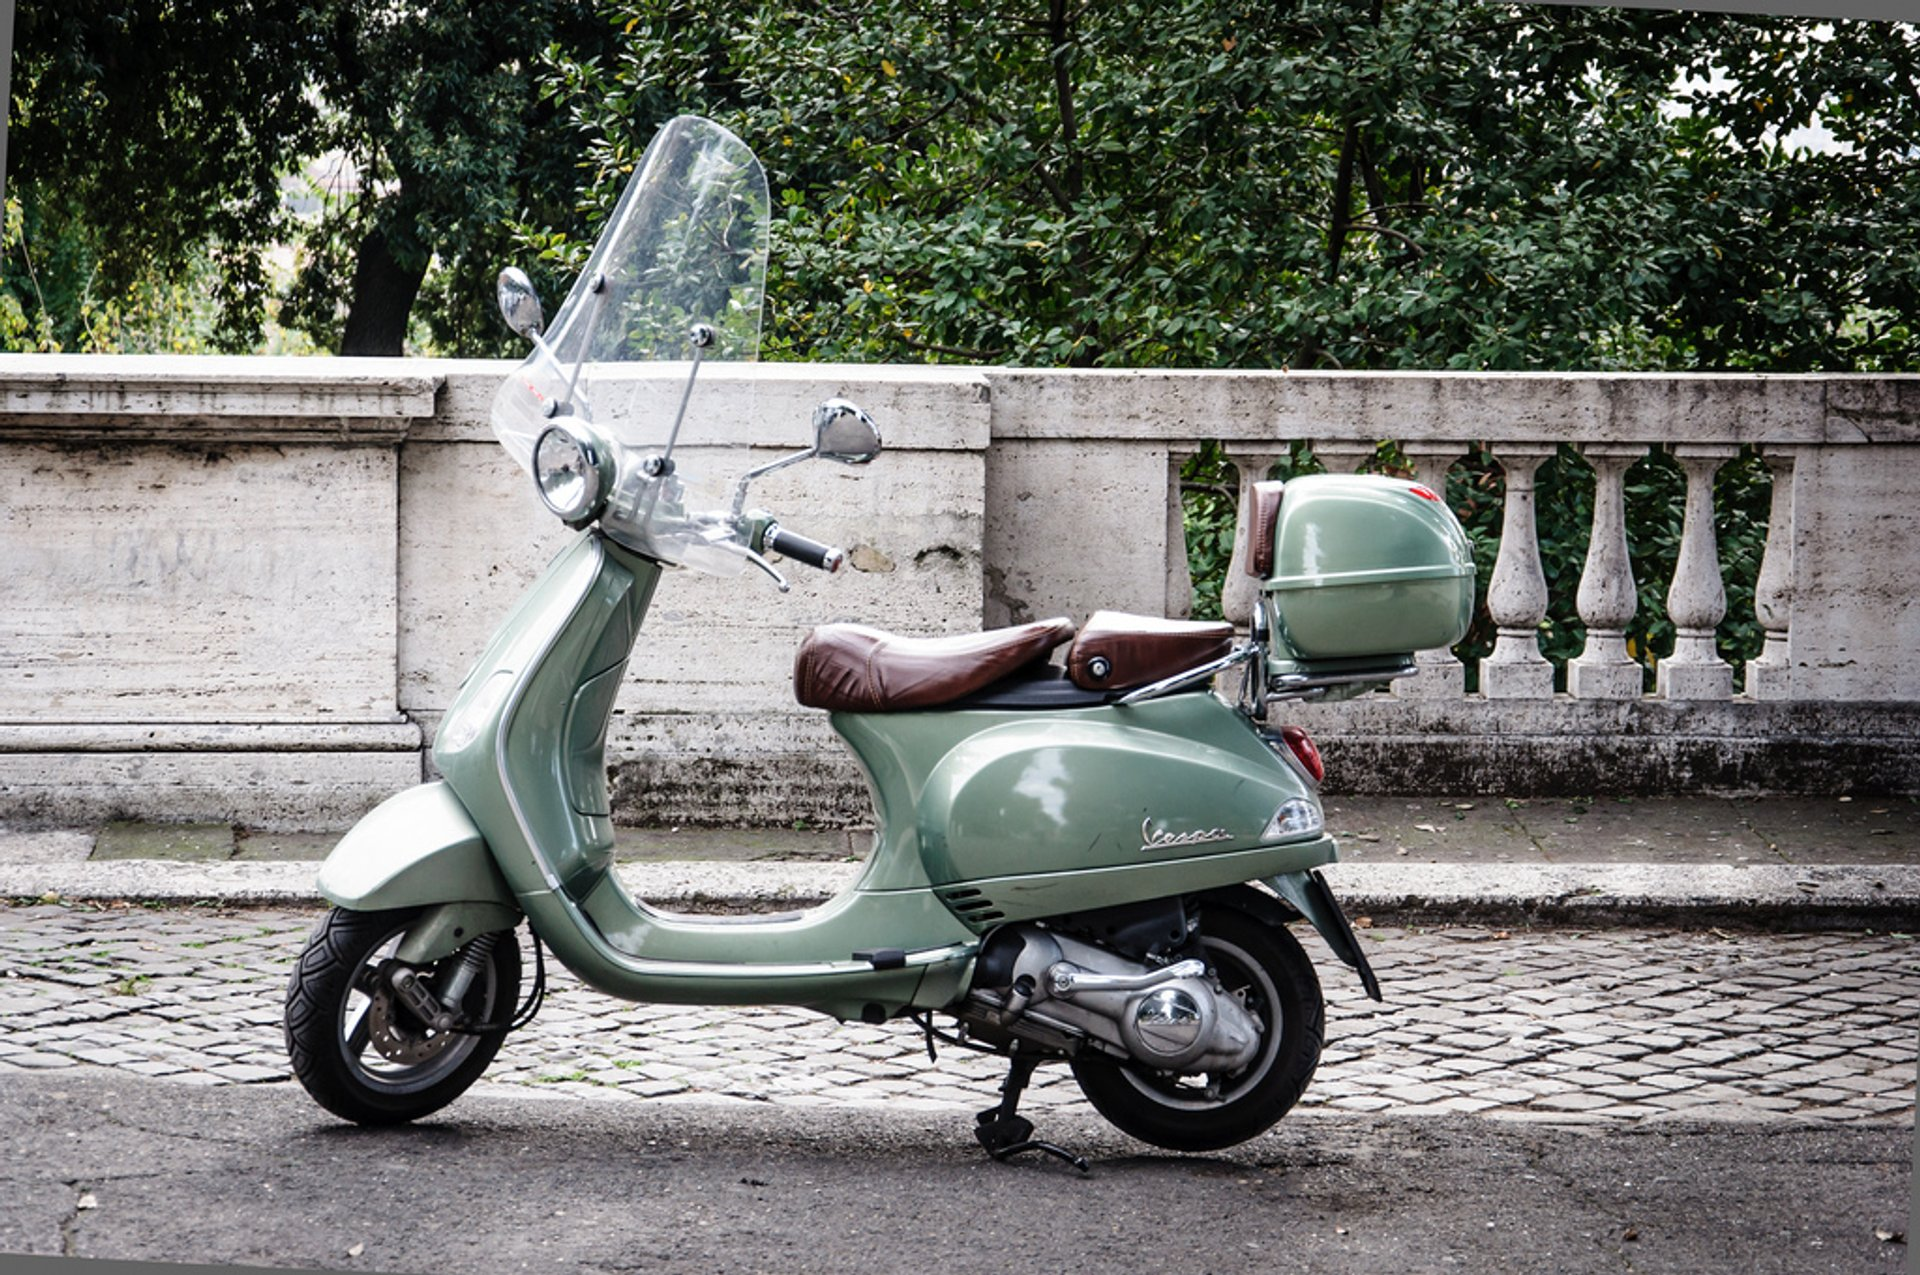 Best time to see Vespa Scooter Tours in Rome 2020